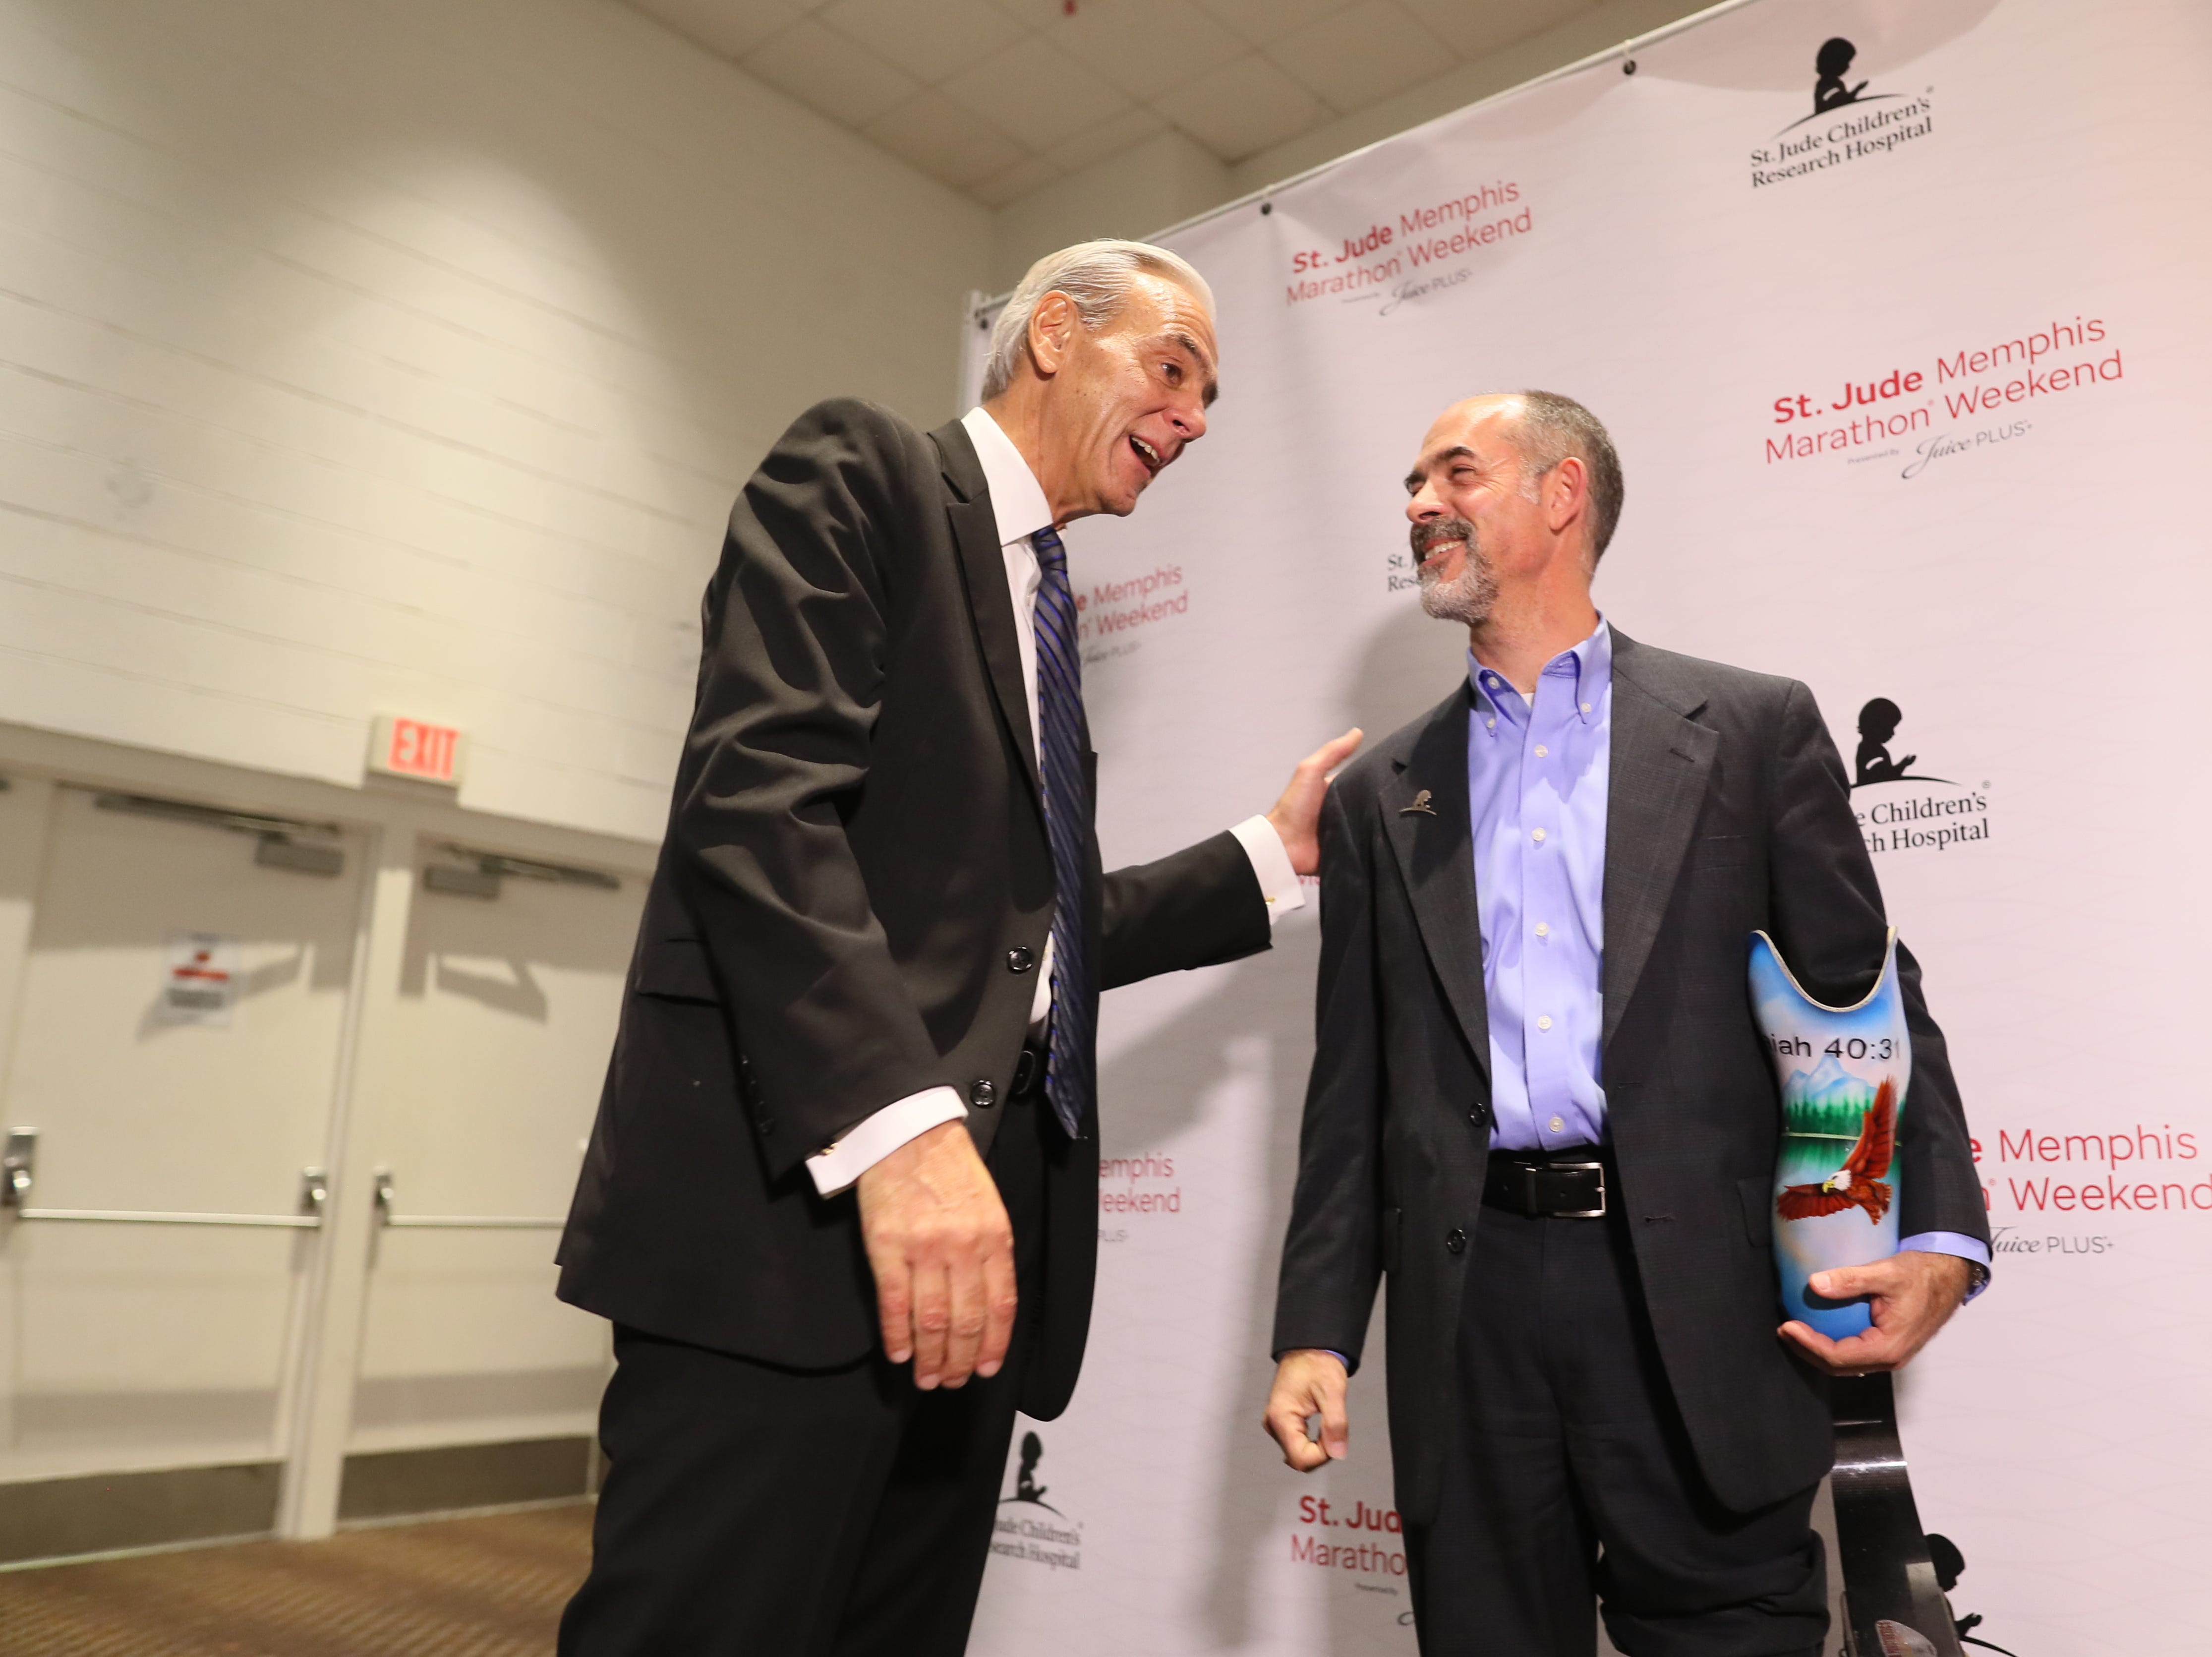 St. Jude Hero Among Us award recipient Kent Stoneking chats with ALSAC President and CEO Rick Shadyac during a press conference at the Cook Convention Center Thursday, Nov. 29, 2018.